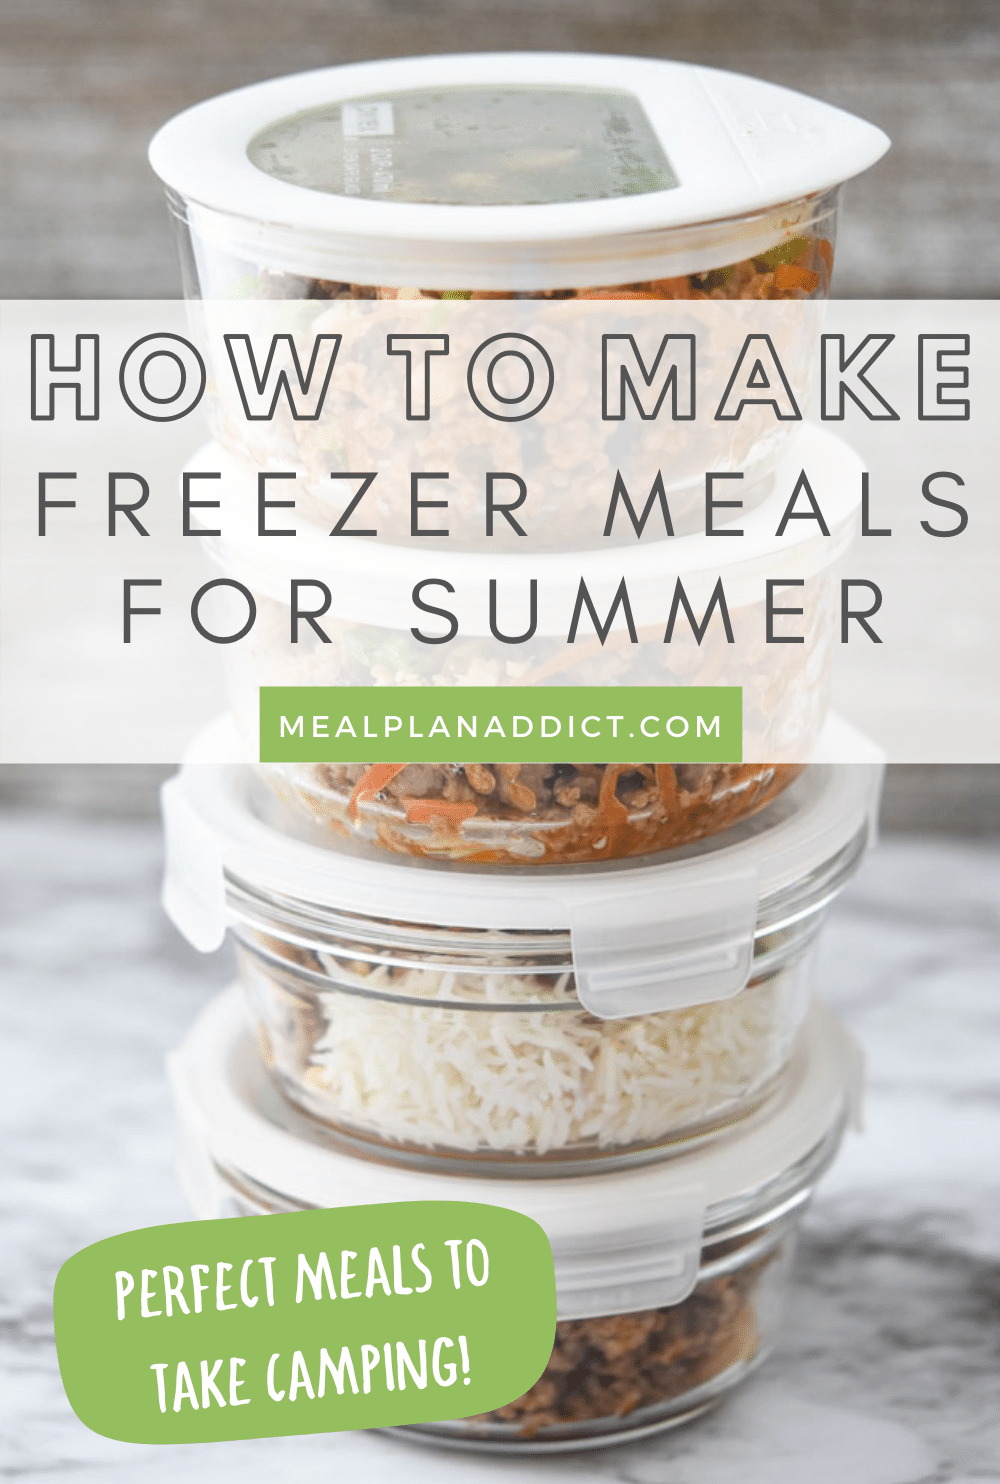 How to Make Freezer Meals for the Summer